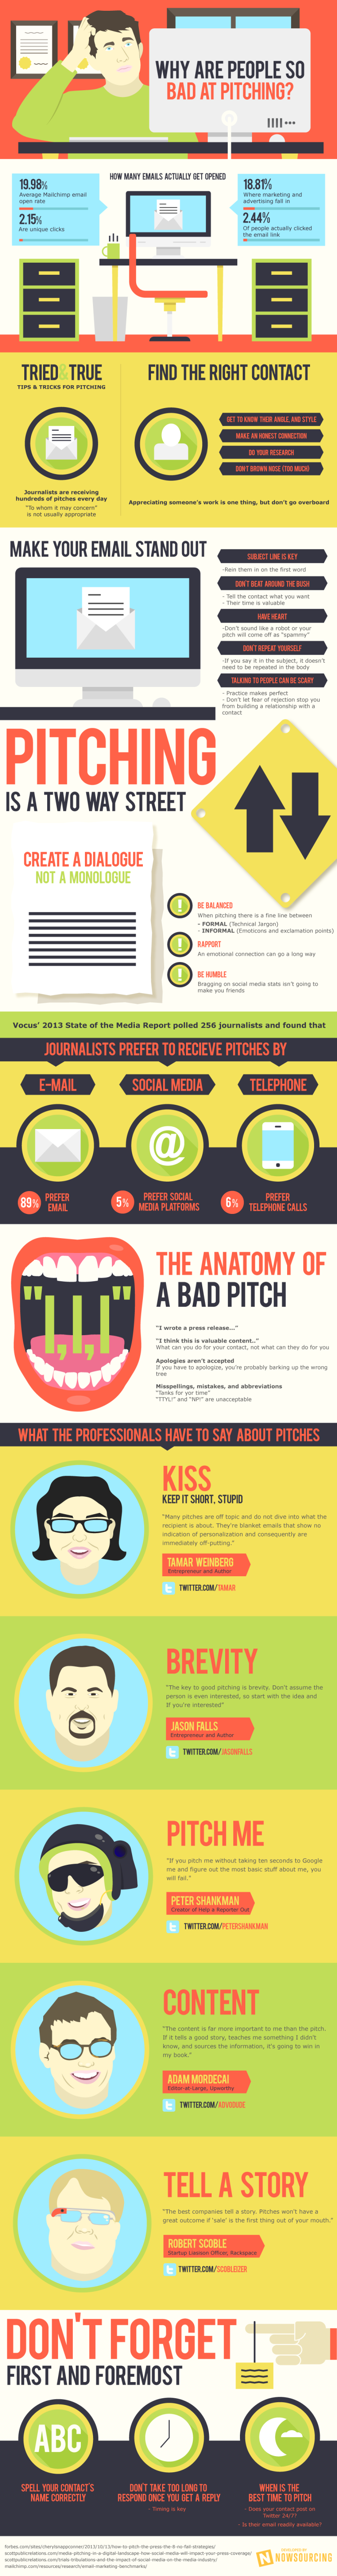 Why Are People So Bad At Pitching [Infographic]